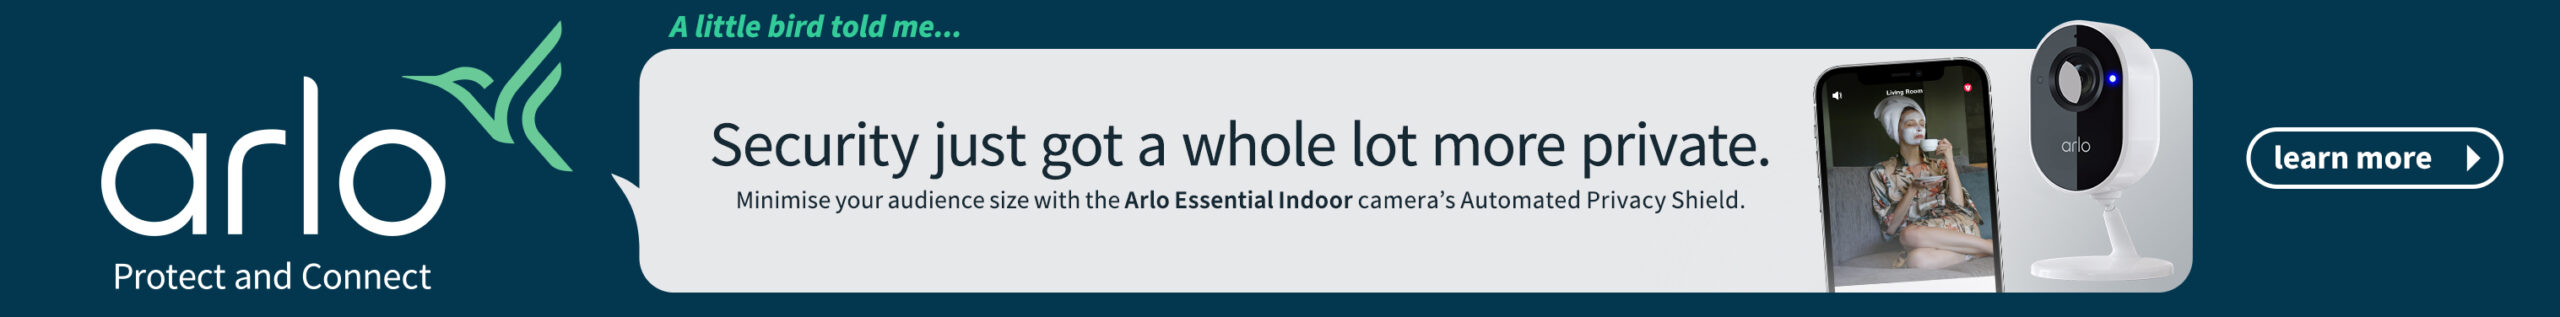 ARL0355 Arlo ESS Indoor Generic Banner 728x90 V4 scaled Nokia Slider A Can Do Phone